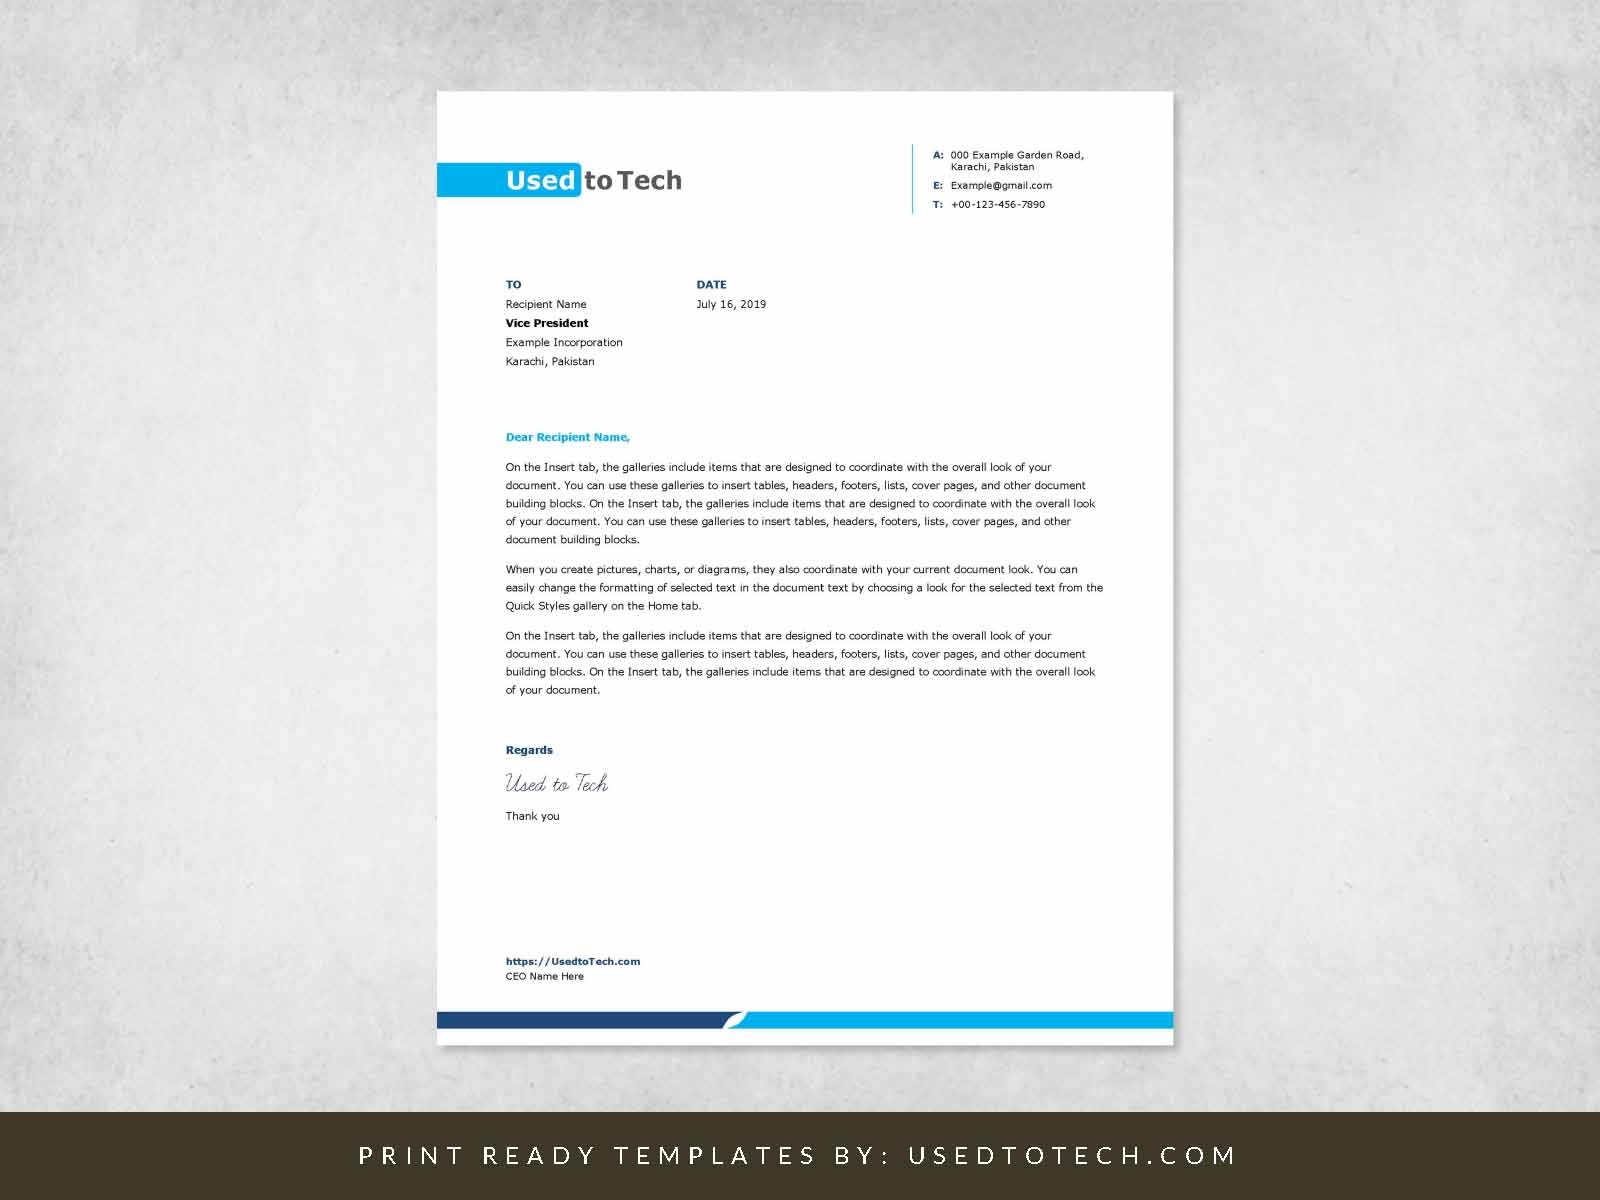 001 Stunning Letterhead Example Free Download Design  Advocate Format Hospital In Word PdfFull